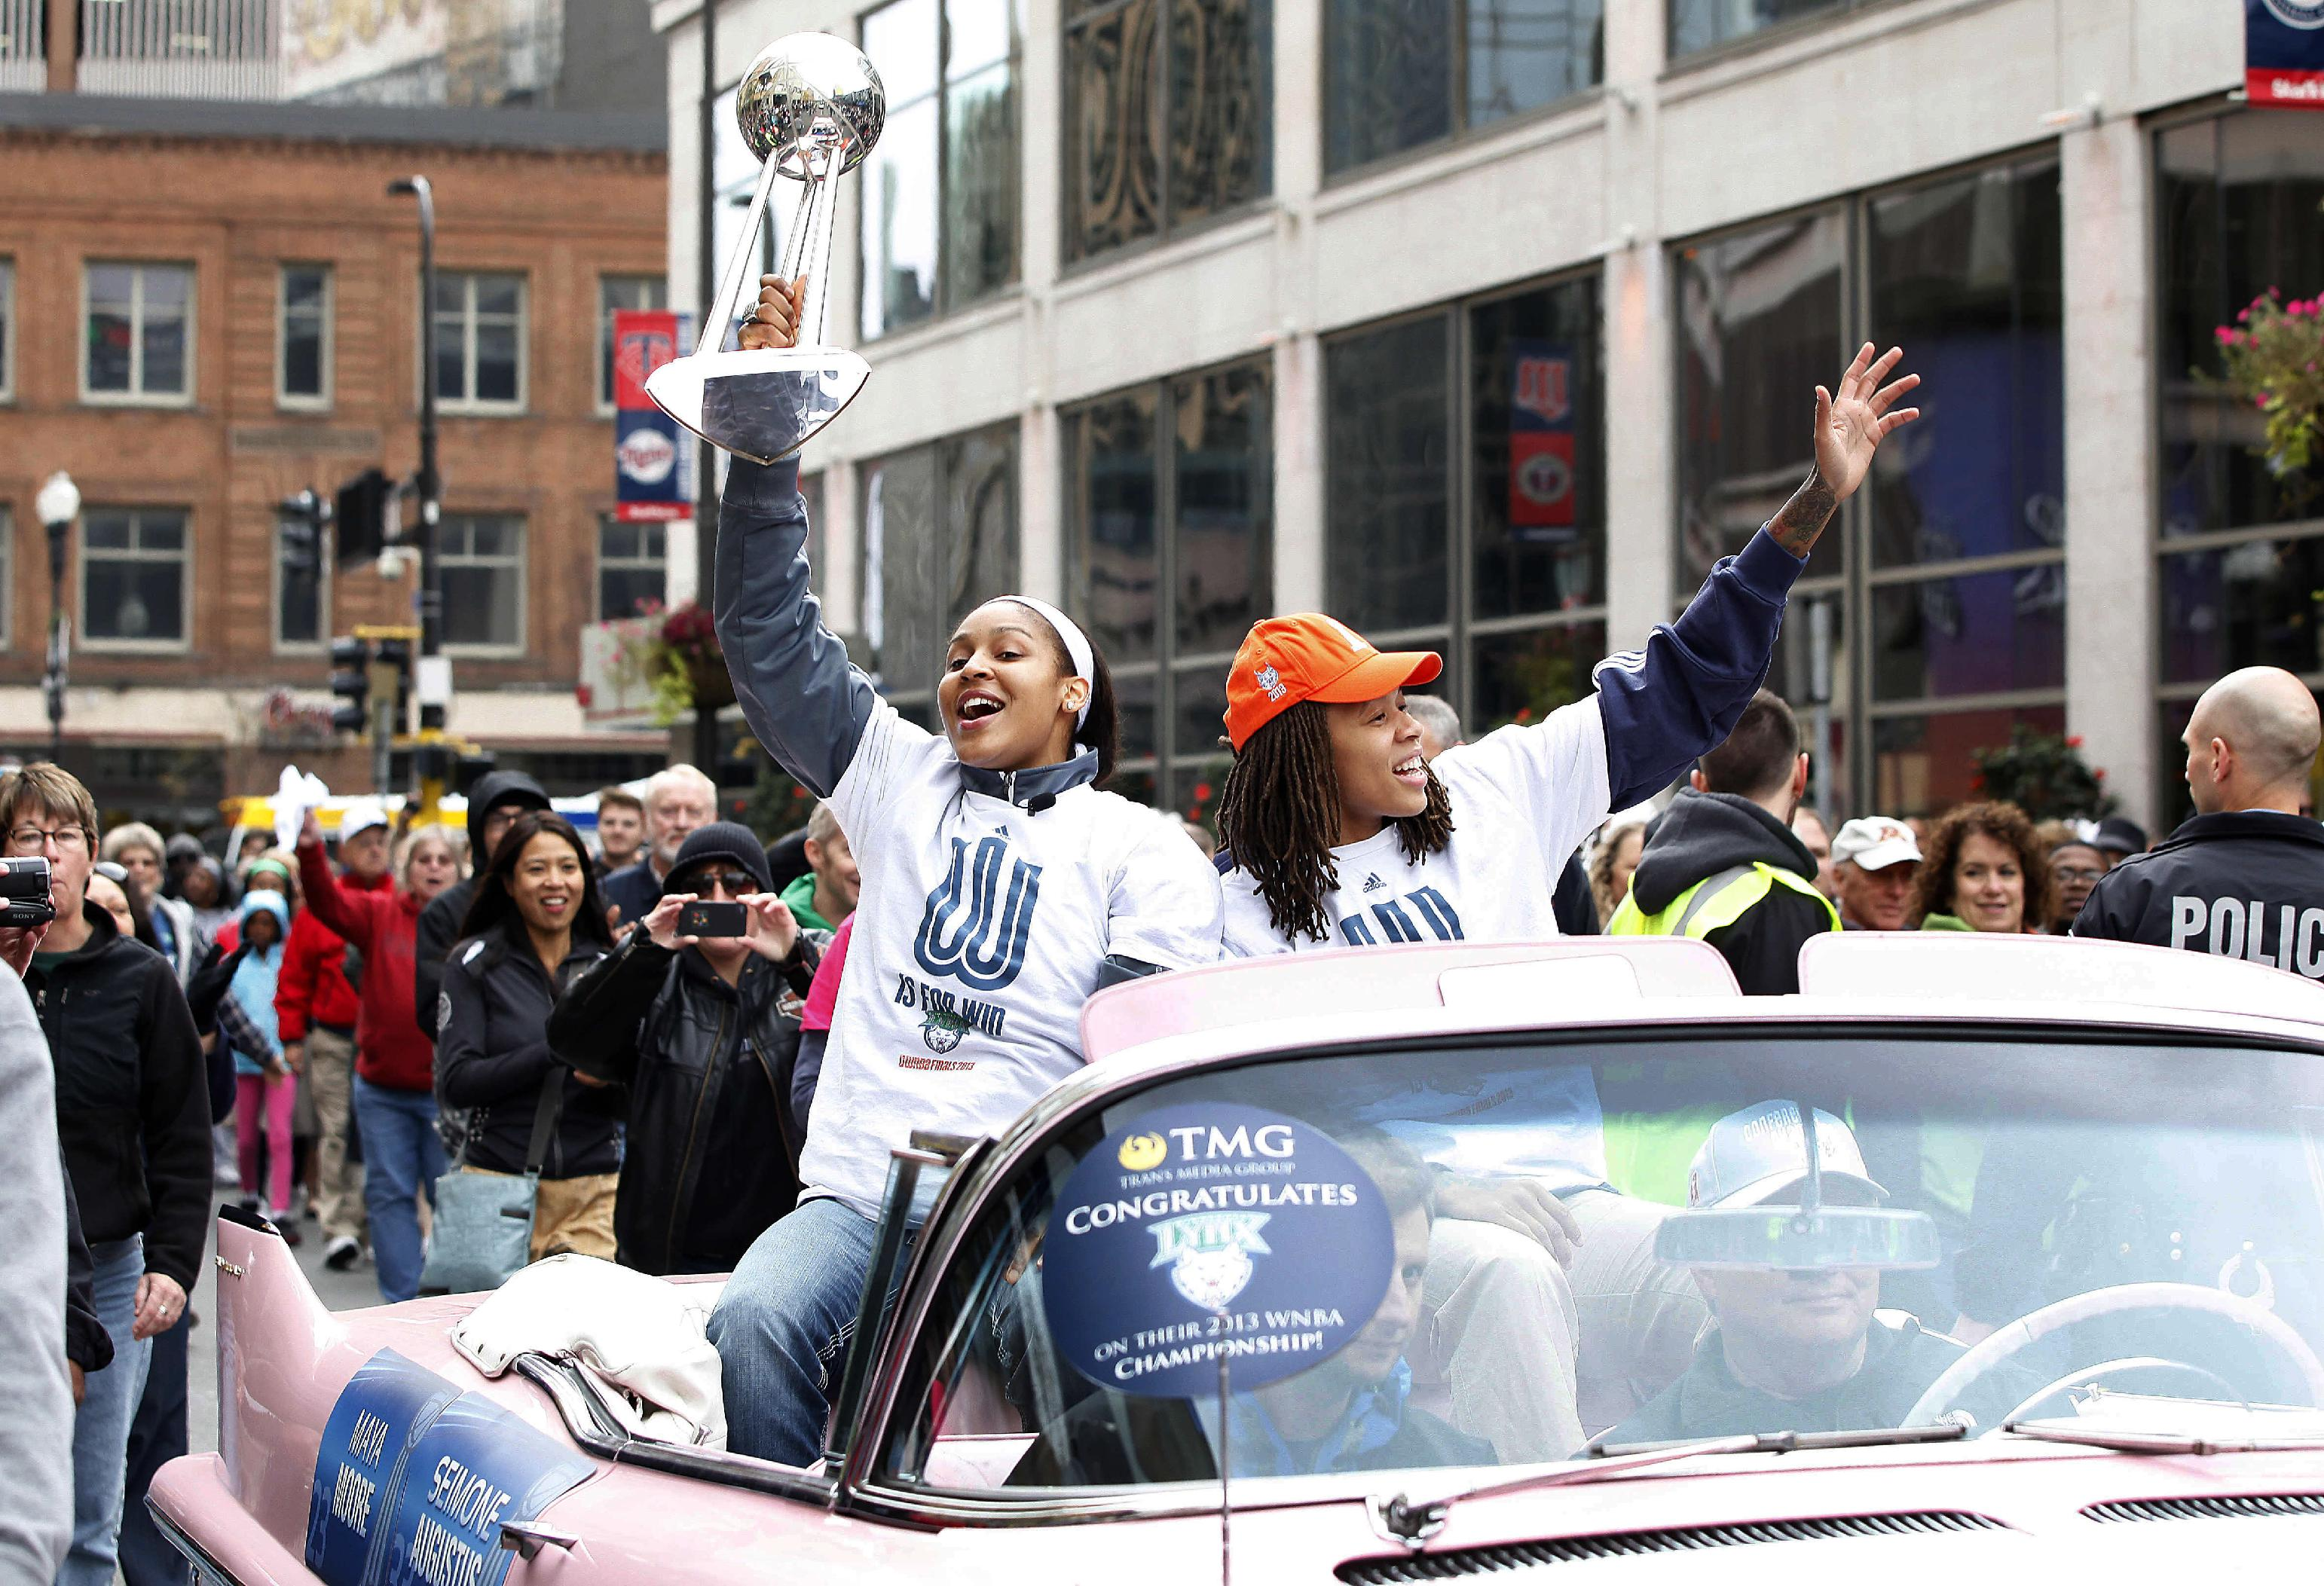 Minnesota Lynx forward Maya Moore, left, and guard Seimone Augustus, right, celebrate during the parade for their  WNBA basketball championship title, Monday, Oct. 14, 2013, in Minneapolis